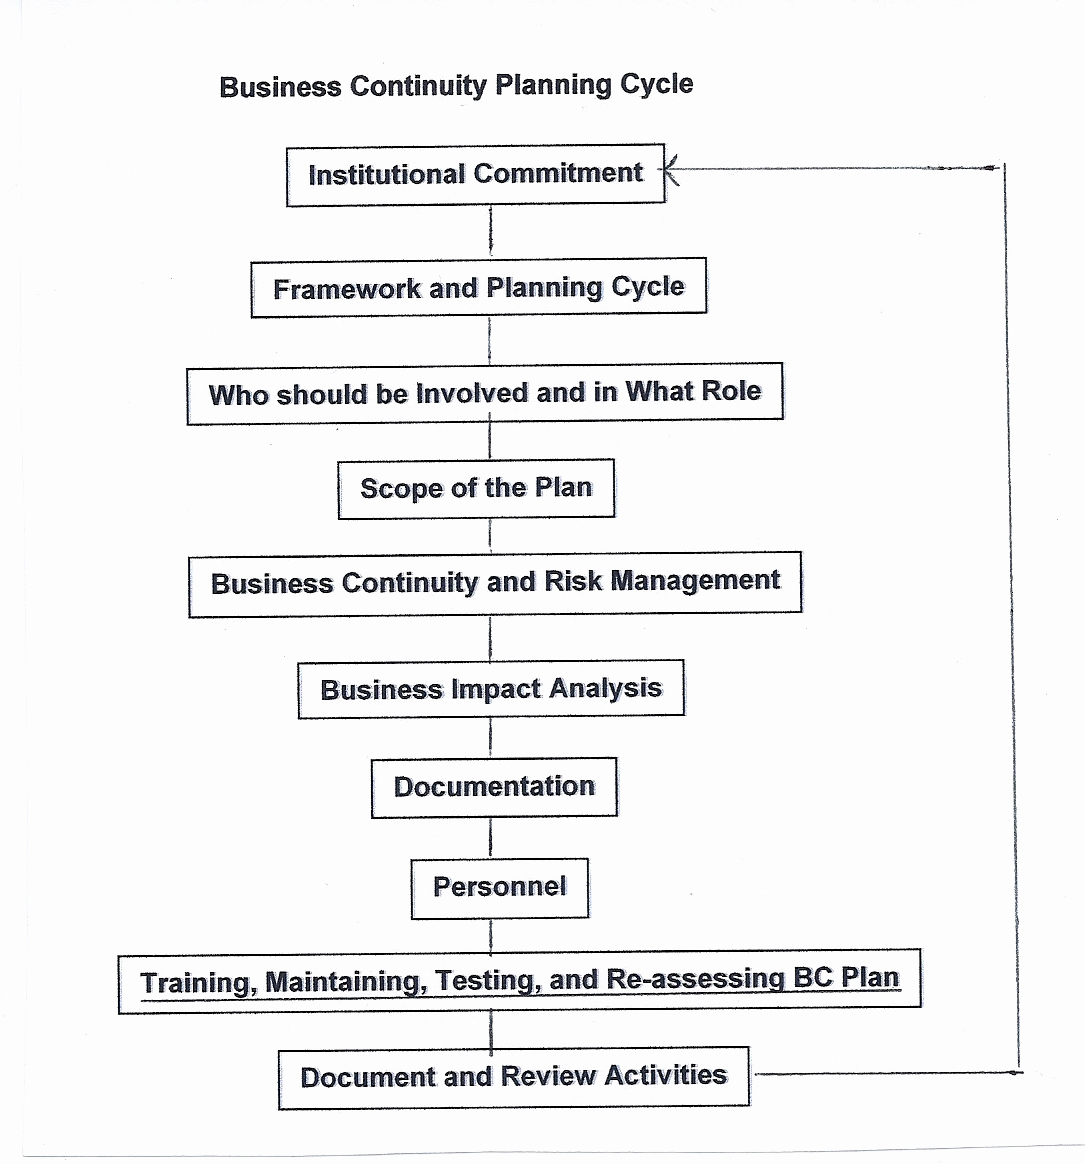 Disaster Recovery Plan Example Pdf Best Of Business Continuity and Disaster Recovery